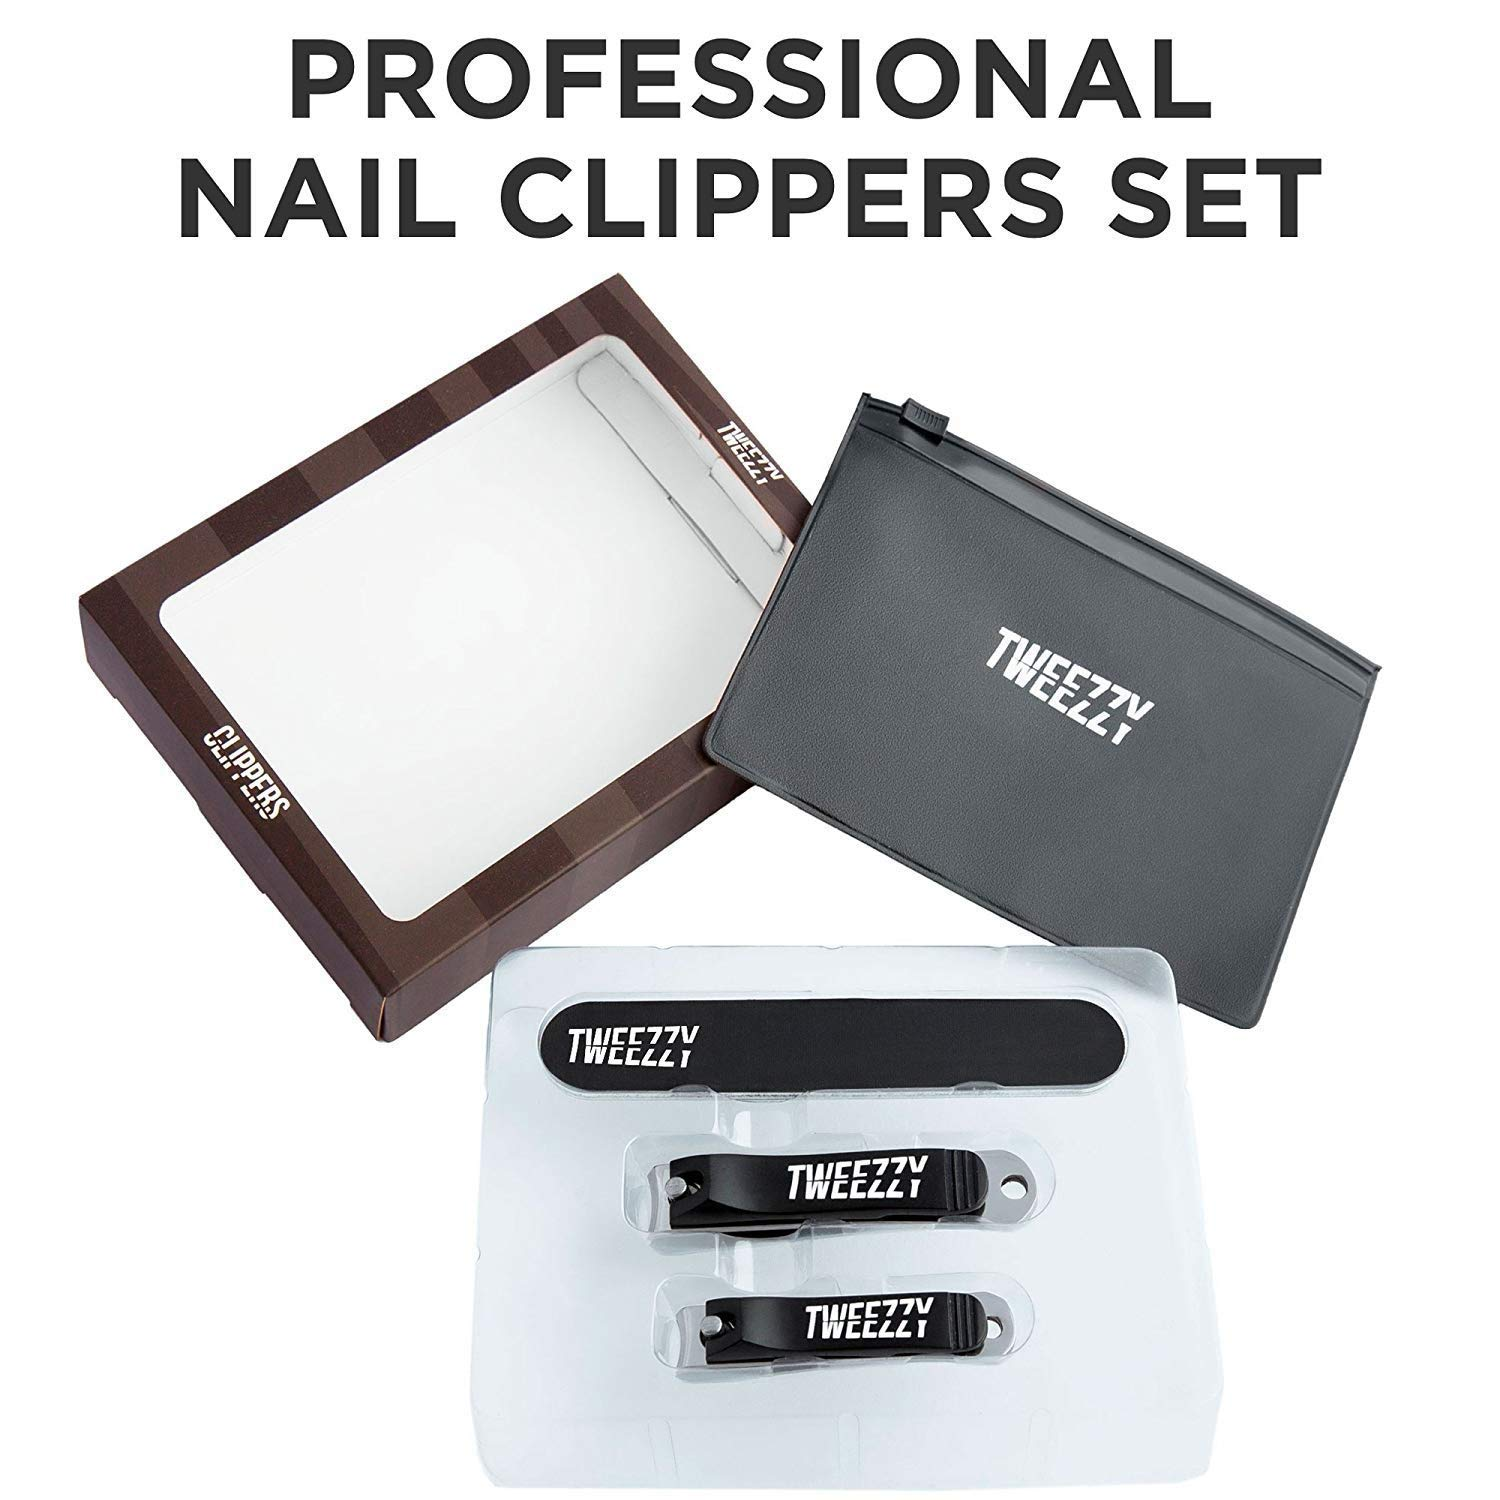 TWEEZZY Professional Grade Nail Clippers Set - Toenail Clipper for Thick Nails, Fingernail Clipper, Emery Board for Filing & PVC Storage Bag - Luxurious Manicure Set for Men & Women - Sharp Blades by Tweezzy